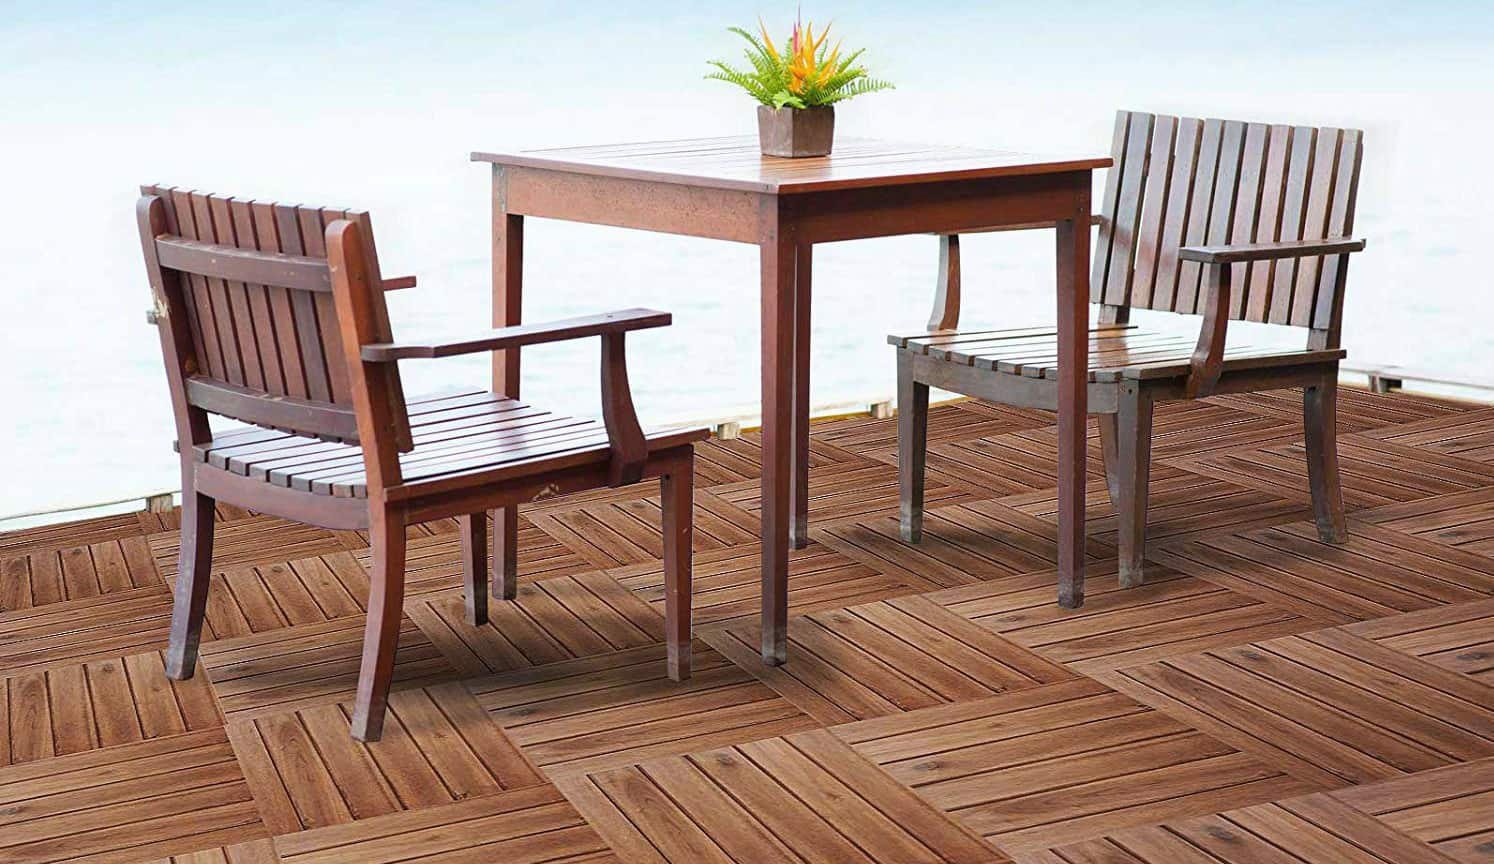 Flooring Pavers as the third related product of Outdoor Patio Pavers